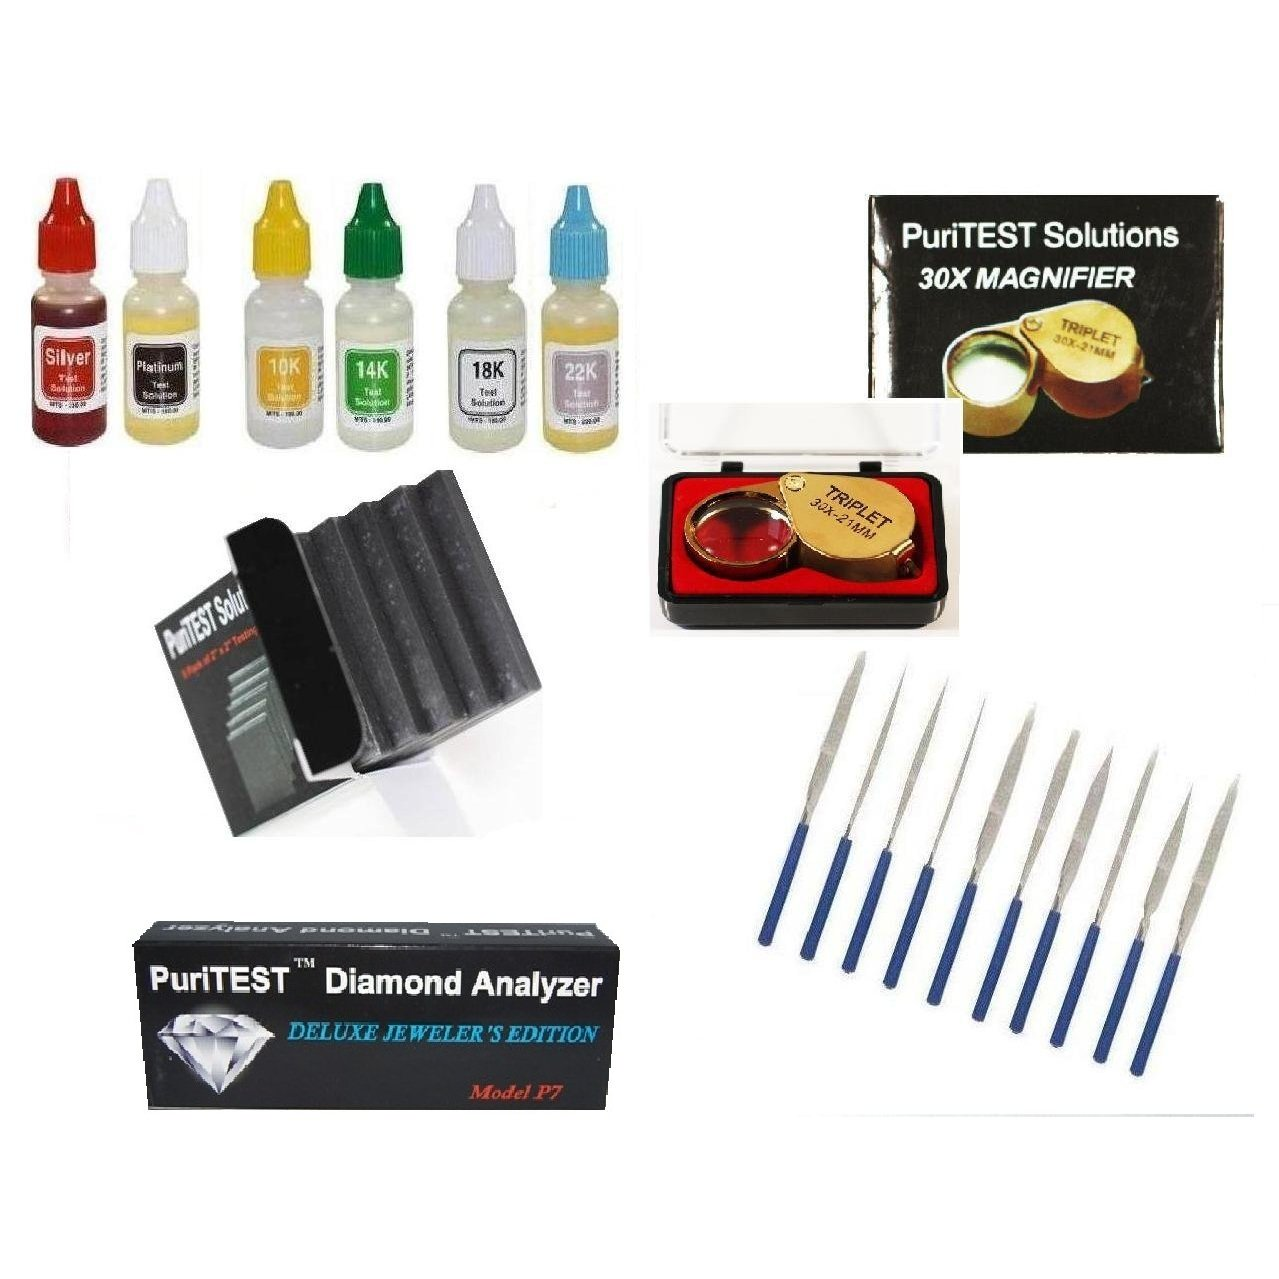 PuriTEST Deluxe Jeweler's Hand Tool Pack- Diamond Tester, Stones, Files, Precious Metal Acid Test, Loupe and More! by PuriTEST (Image #1)